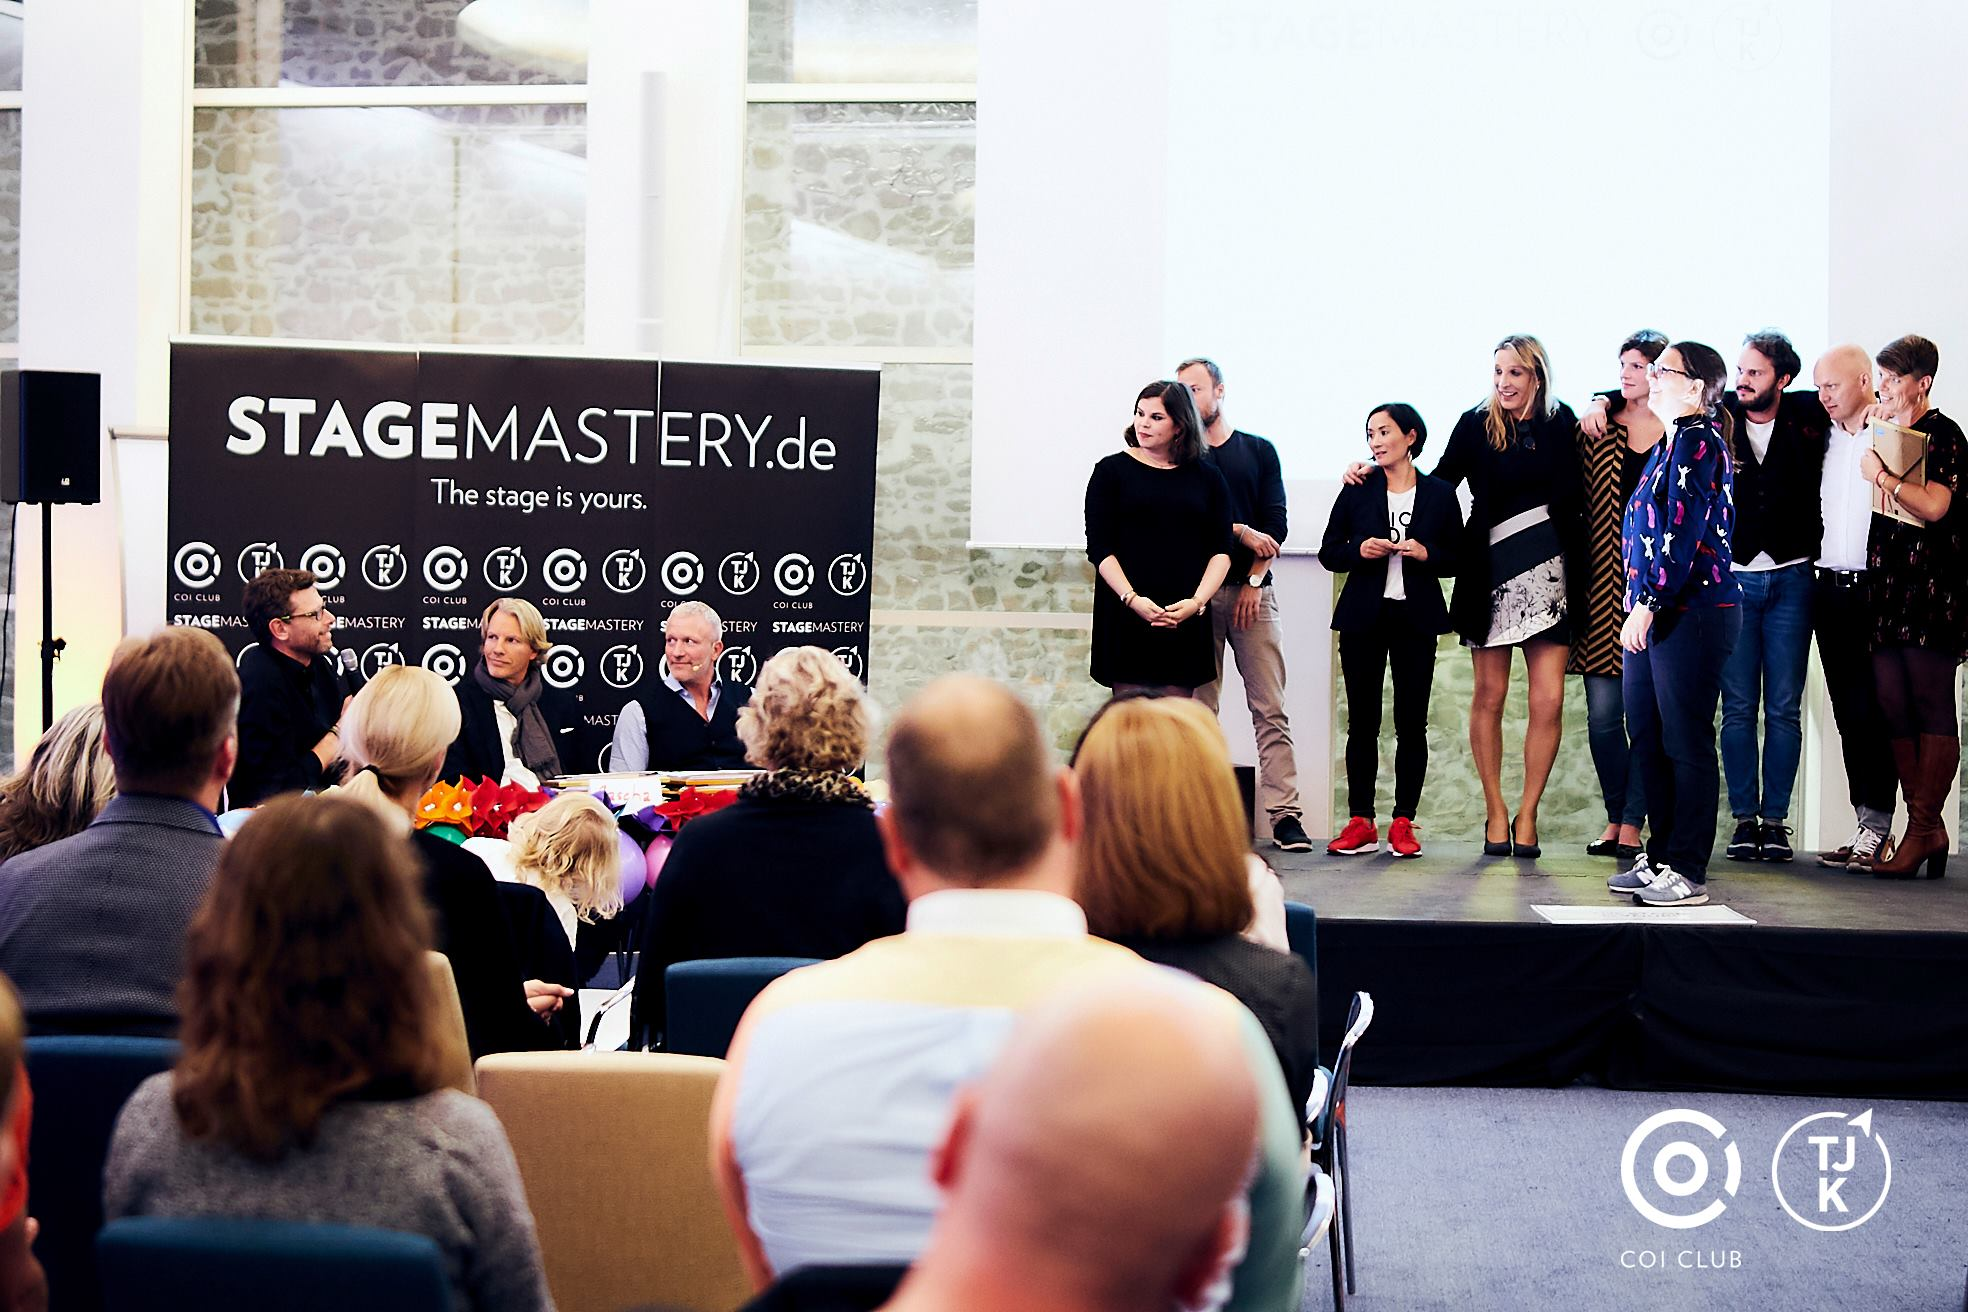 StageMastery in Hamburg